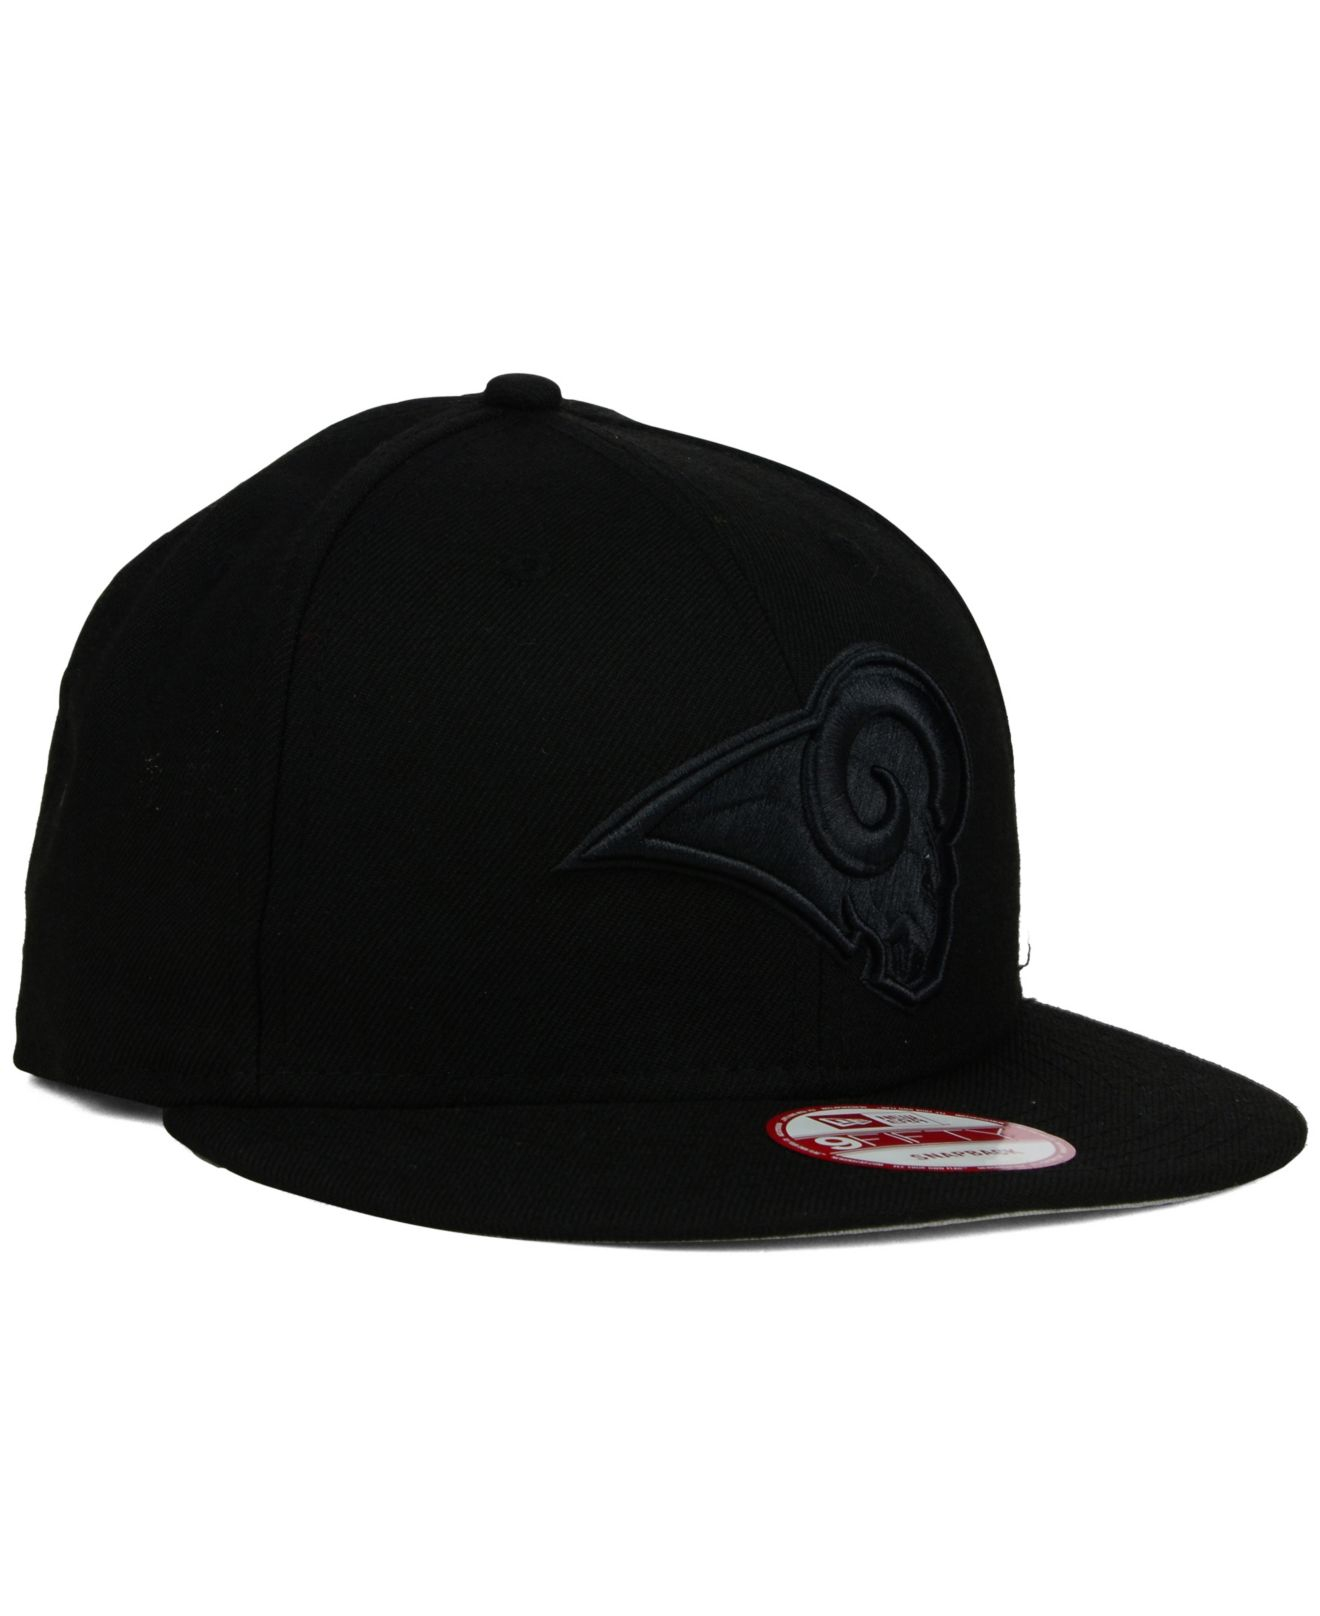 212dd3744 Lyst - Ktz St. Louis Rams Nfl Black On Black 9Fifty Snapback Cap in ...